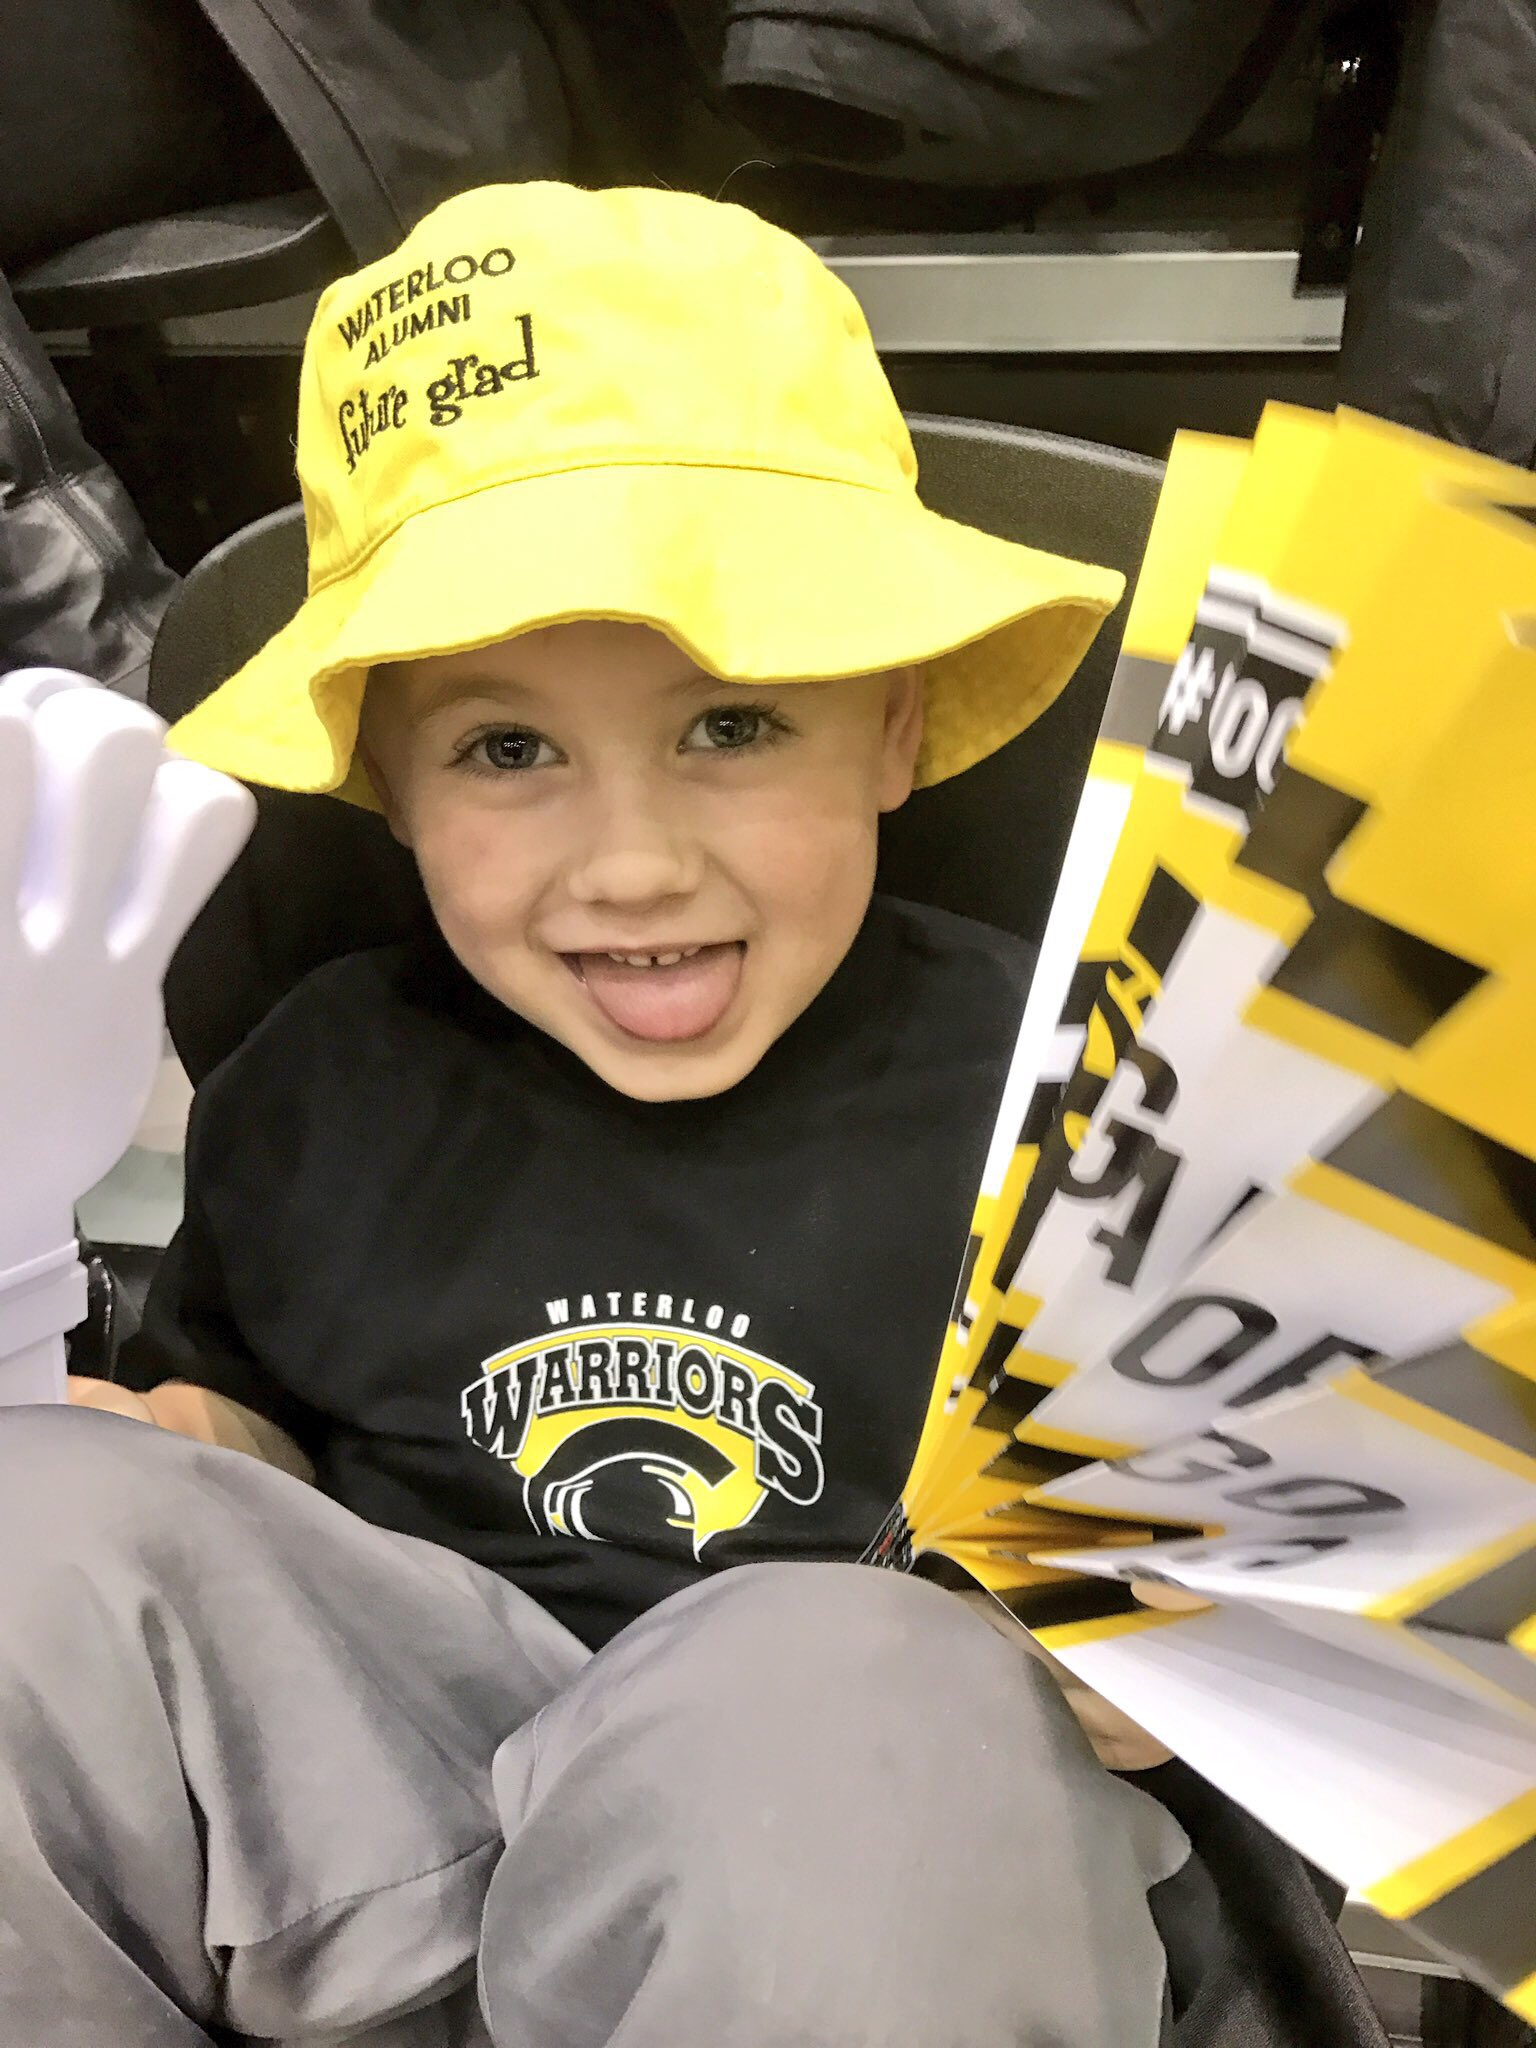 This little man loves Kidsability, thank you for supporting such an amazing organization today @WlooWarriors @uwaterlooalumni #UWaterlooFAD https://t.co/6x5MScx8OR